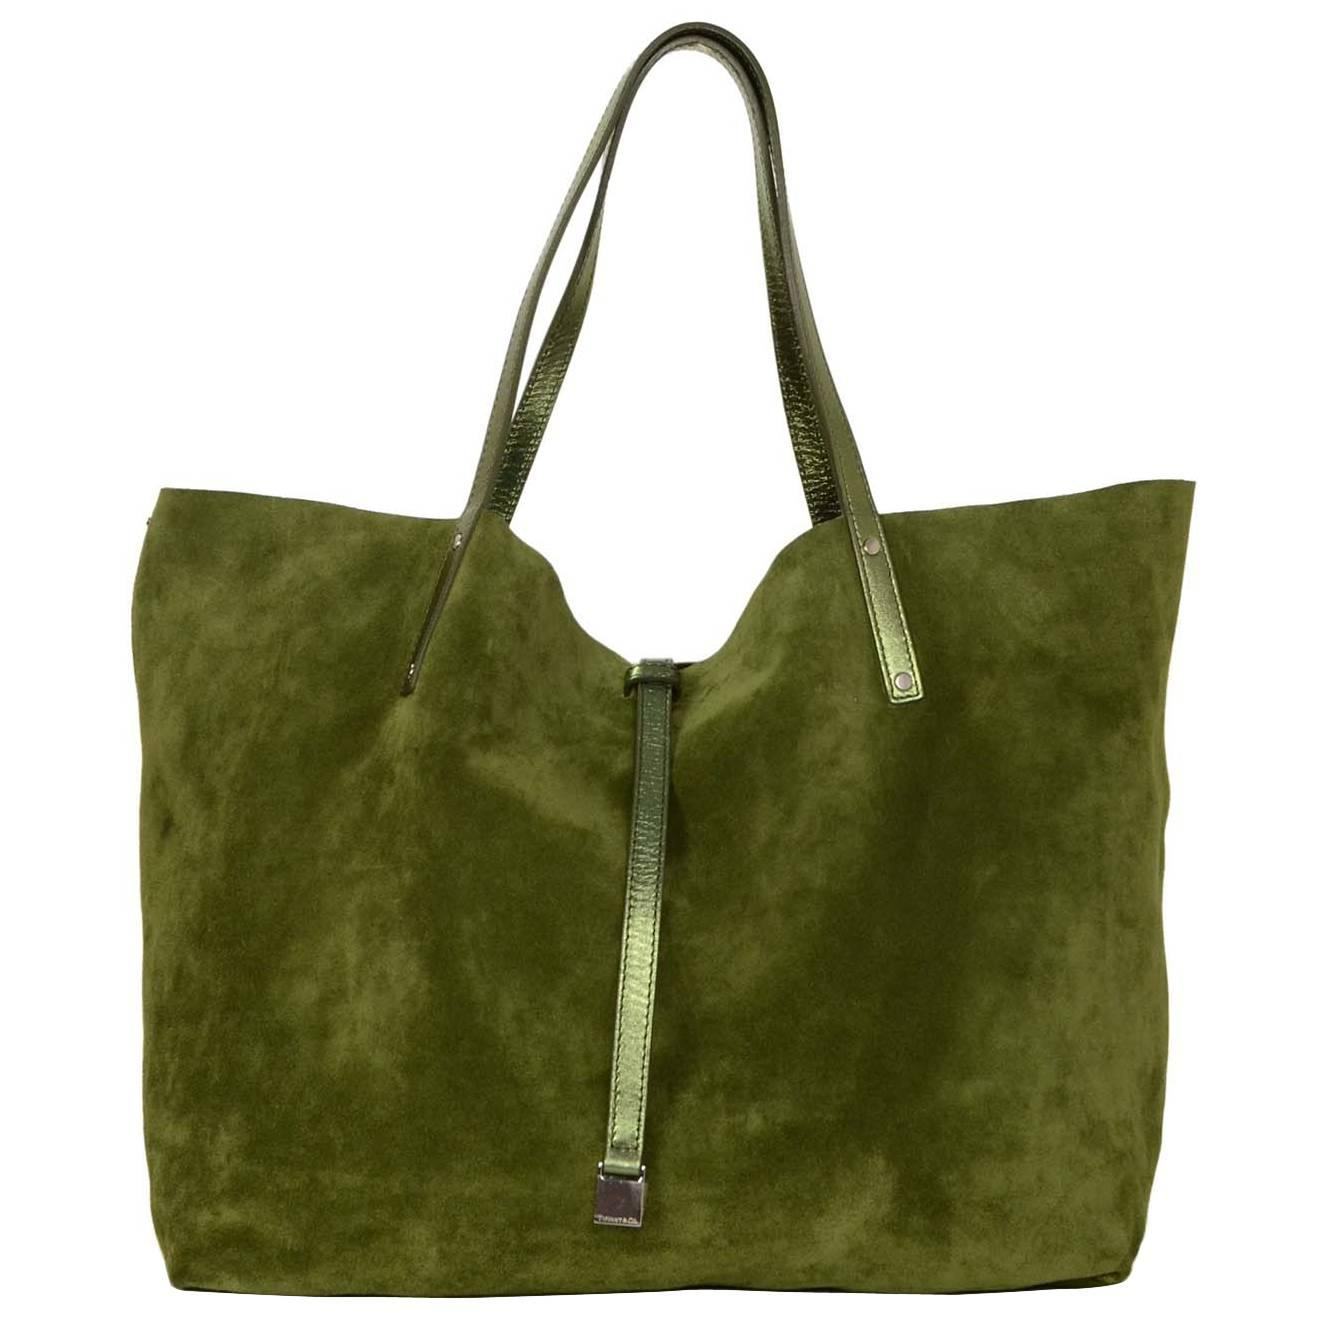 You searched for: green suede purse! Etsy is the home to thousands of handmade, vintage, and one-of-a-kind products and gifts related to your search. No matter what you're looking for or where you are in the world, our global marketplace of sellers can help you find unique and affordable options. Let's get started!